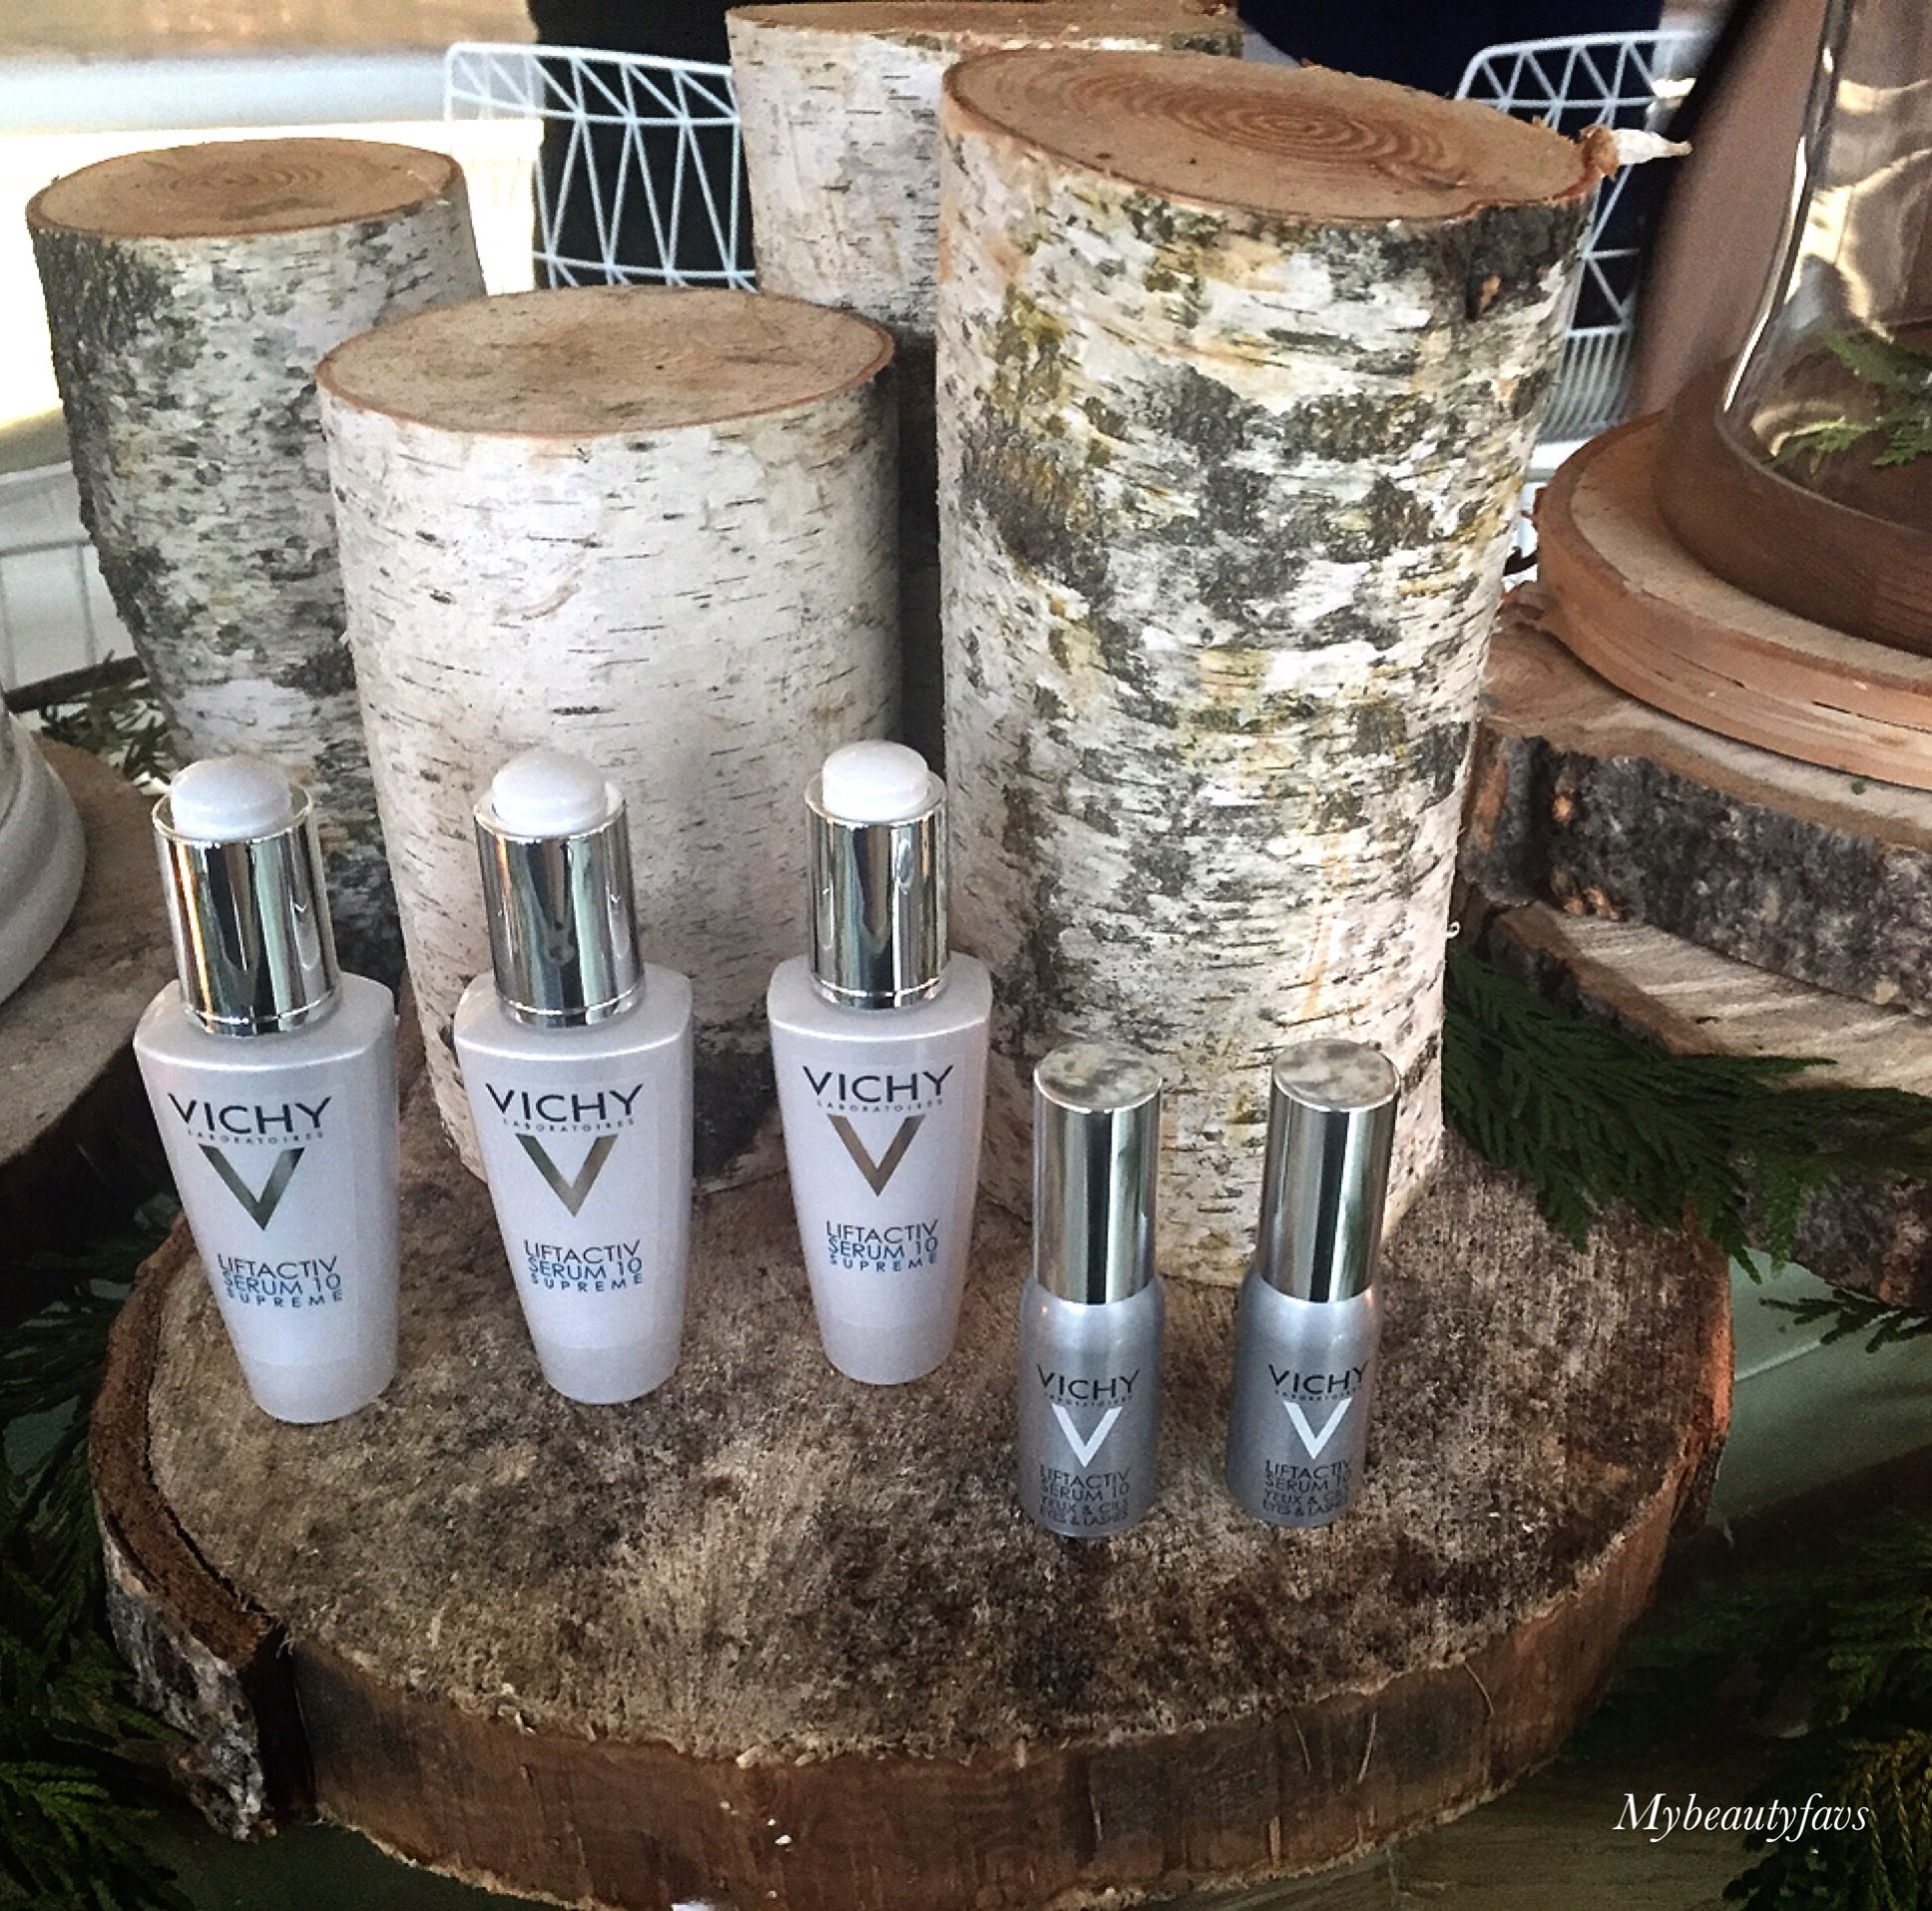 Vichy's New Skincare Launch Product launch, Skin care